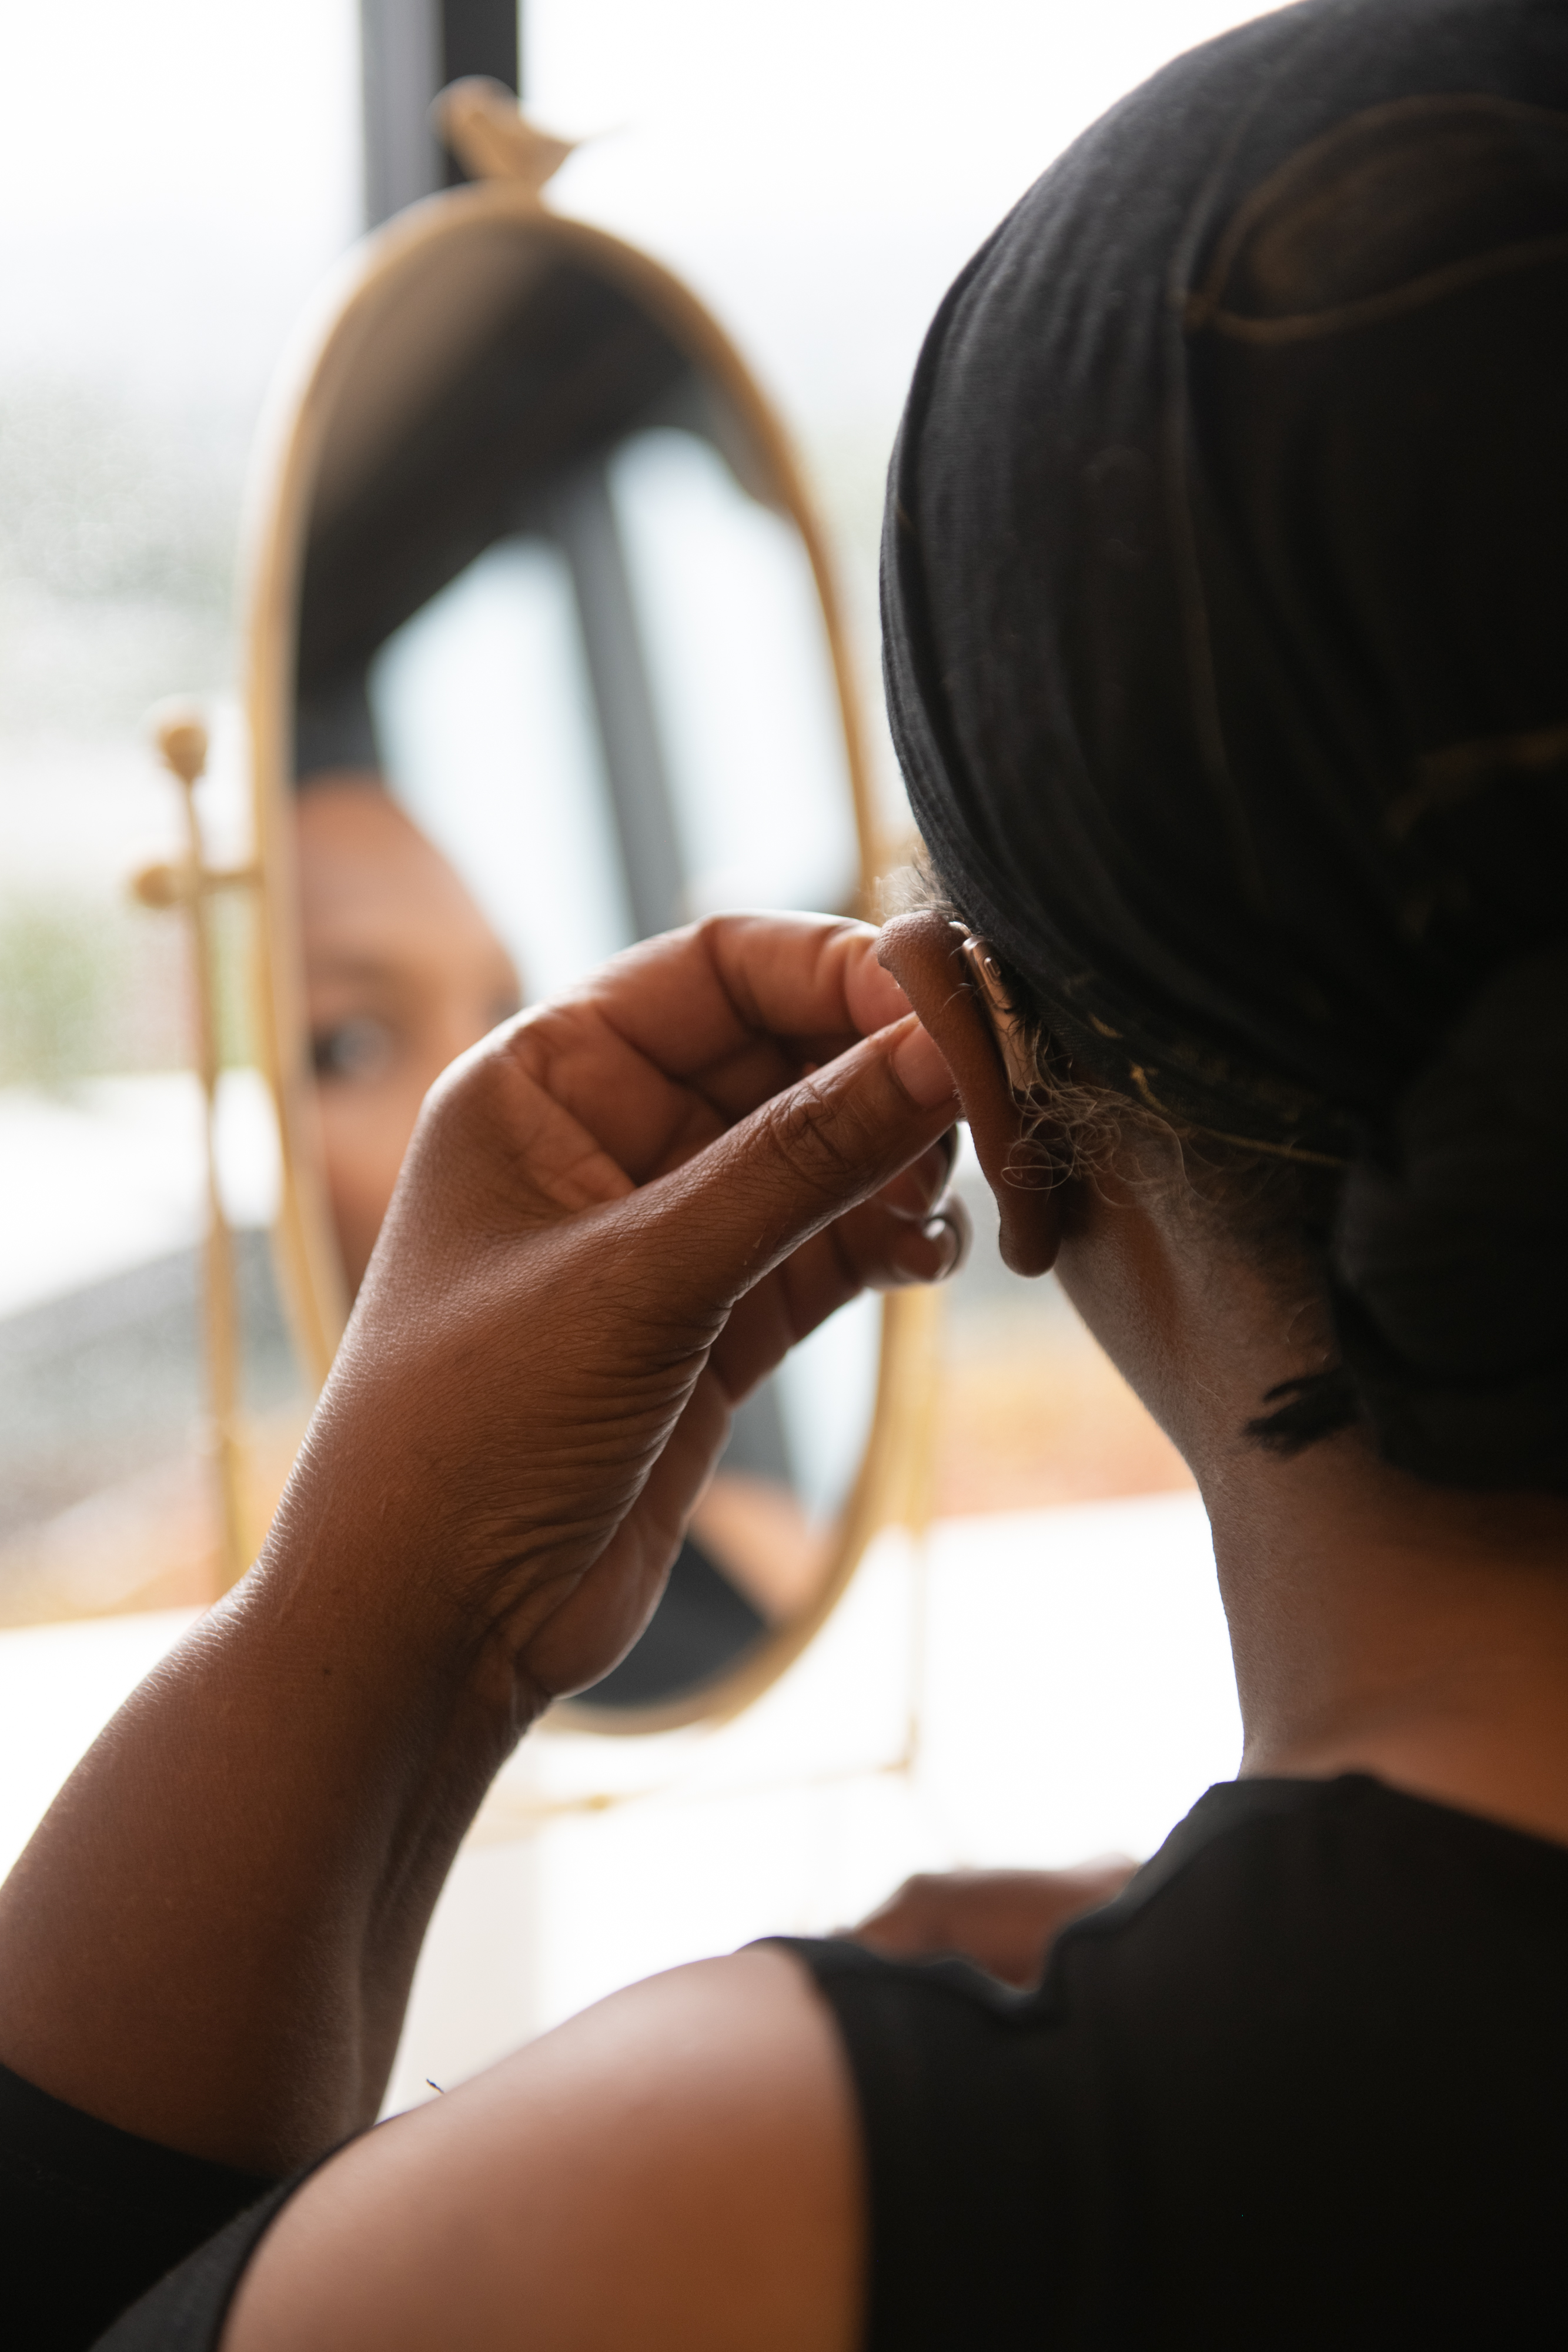 Close-up of a Black woman putting a hearing aid.